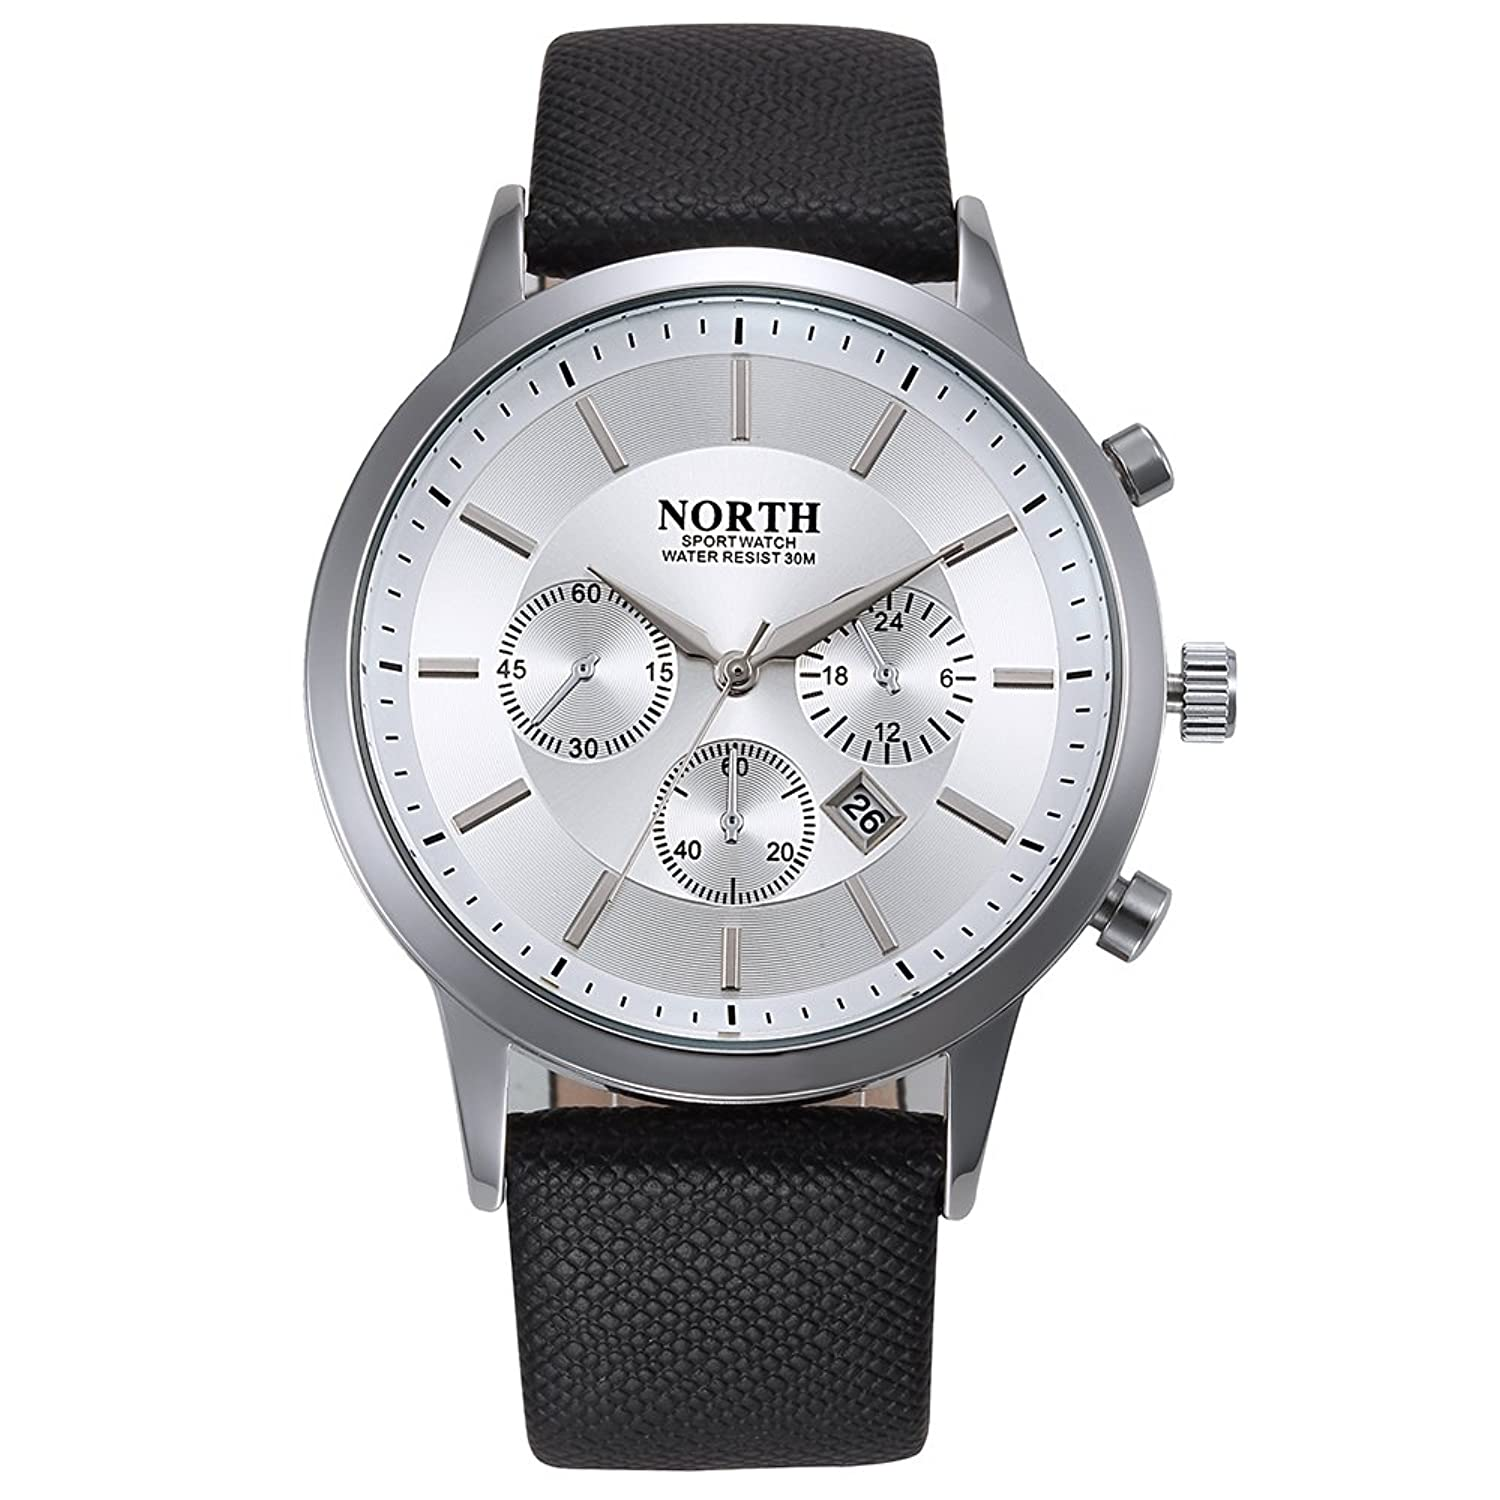 North Mens Fashion Waterproof Quartz Watches With Leather Strap Date Display Analog Sport Wrist Business Watch For Men by North